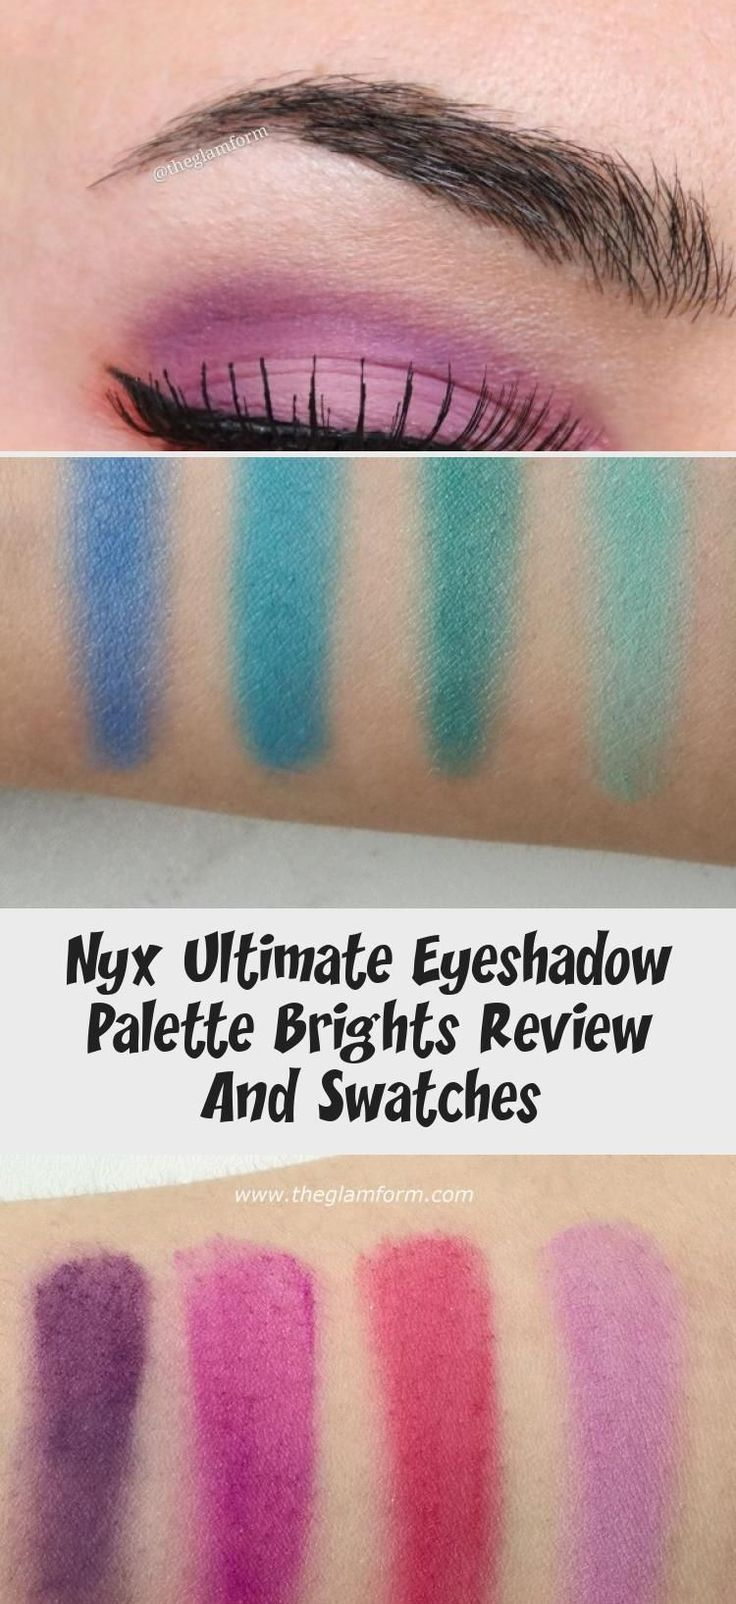 Nyx Ultimate Eyeshadow Palette Brights Review And Swatches